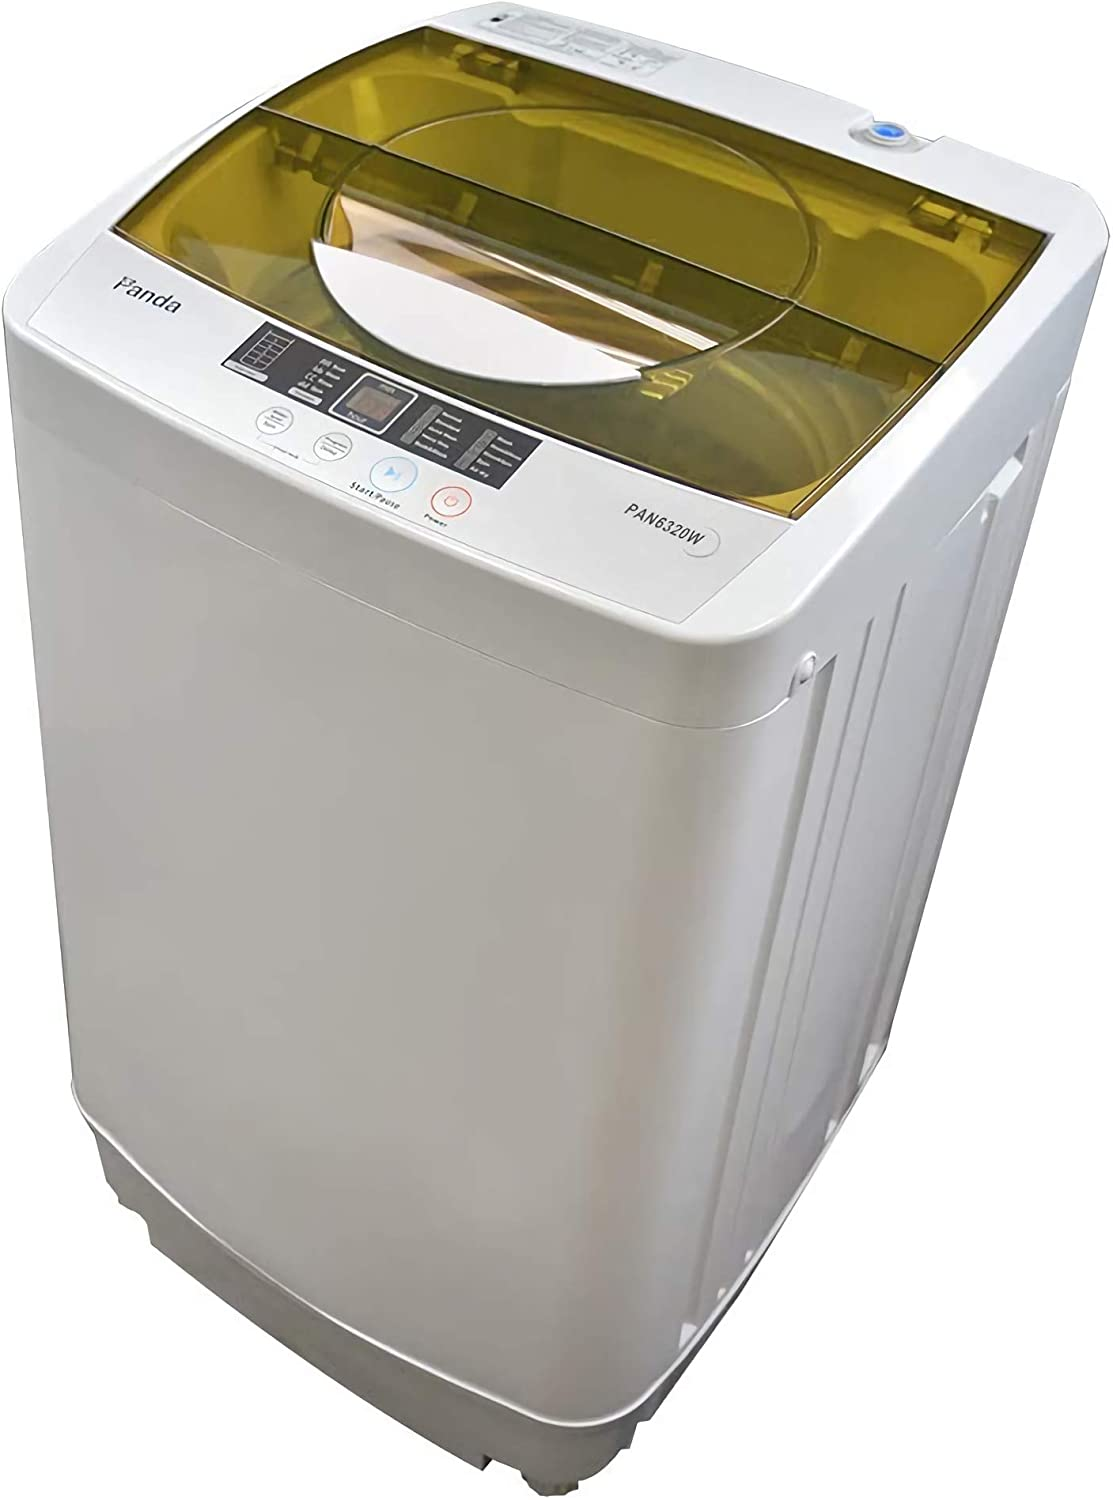 Top 7 Best Washer and Dryer for Apartments [Expert's Choice - 2021] 7